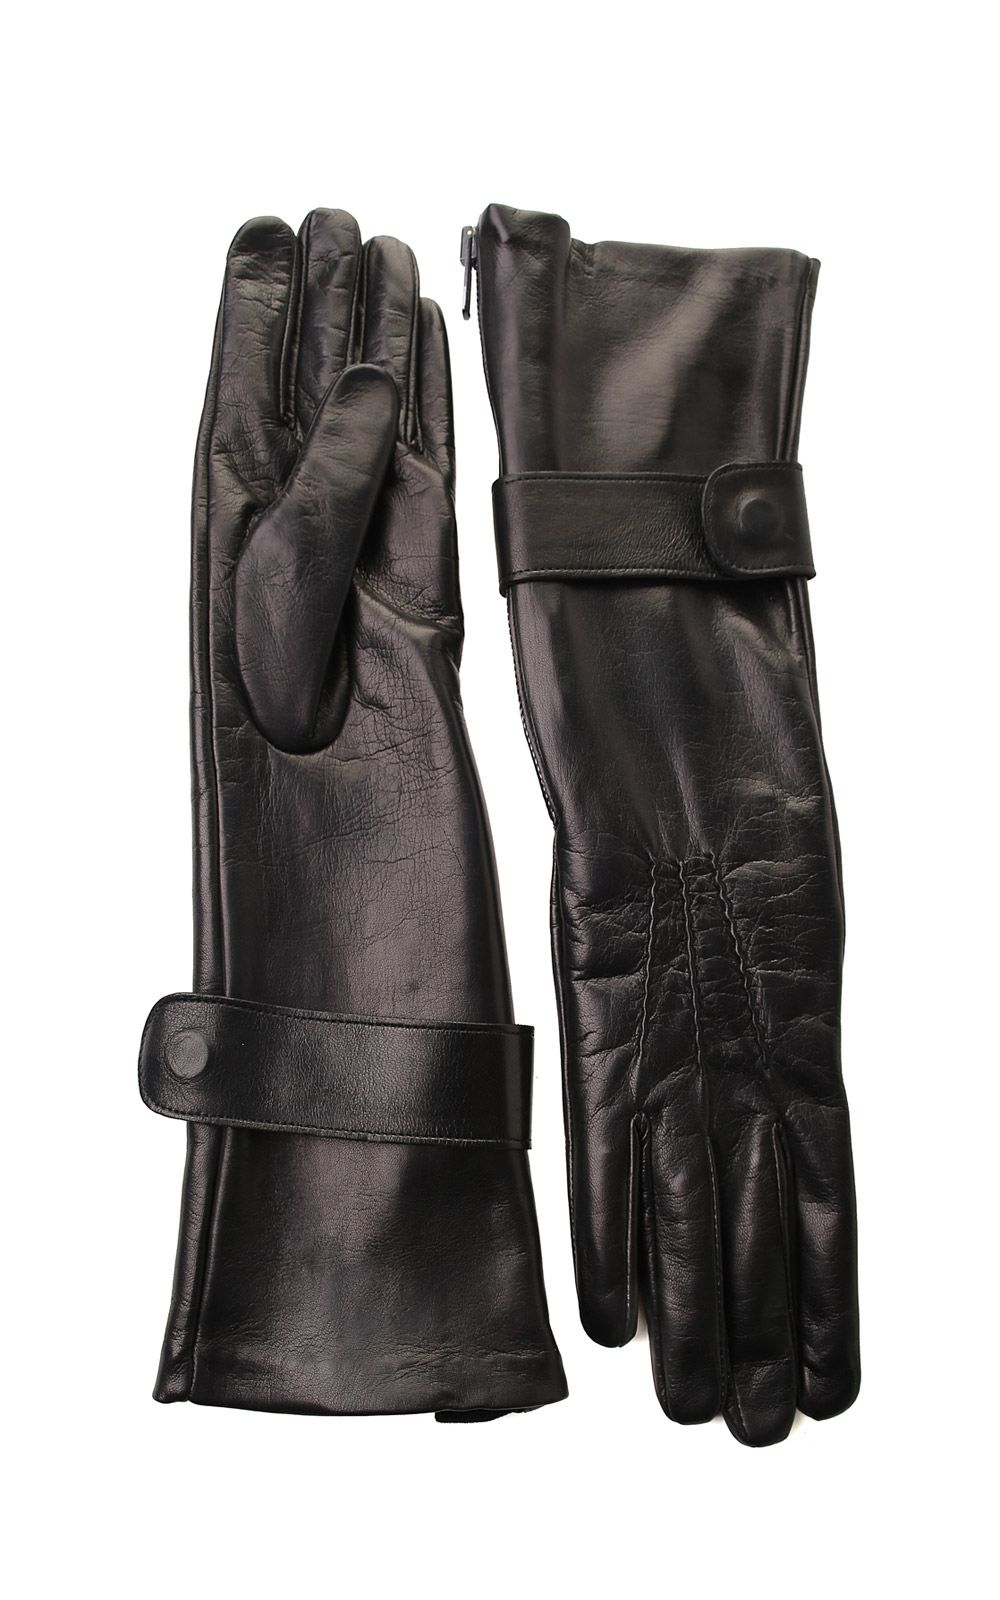 ZIPPED LEATHER GLOVES